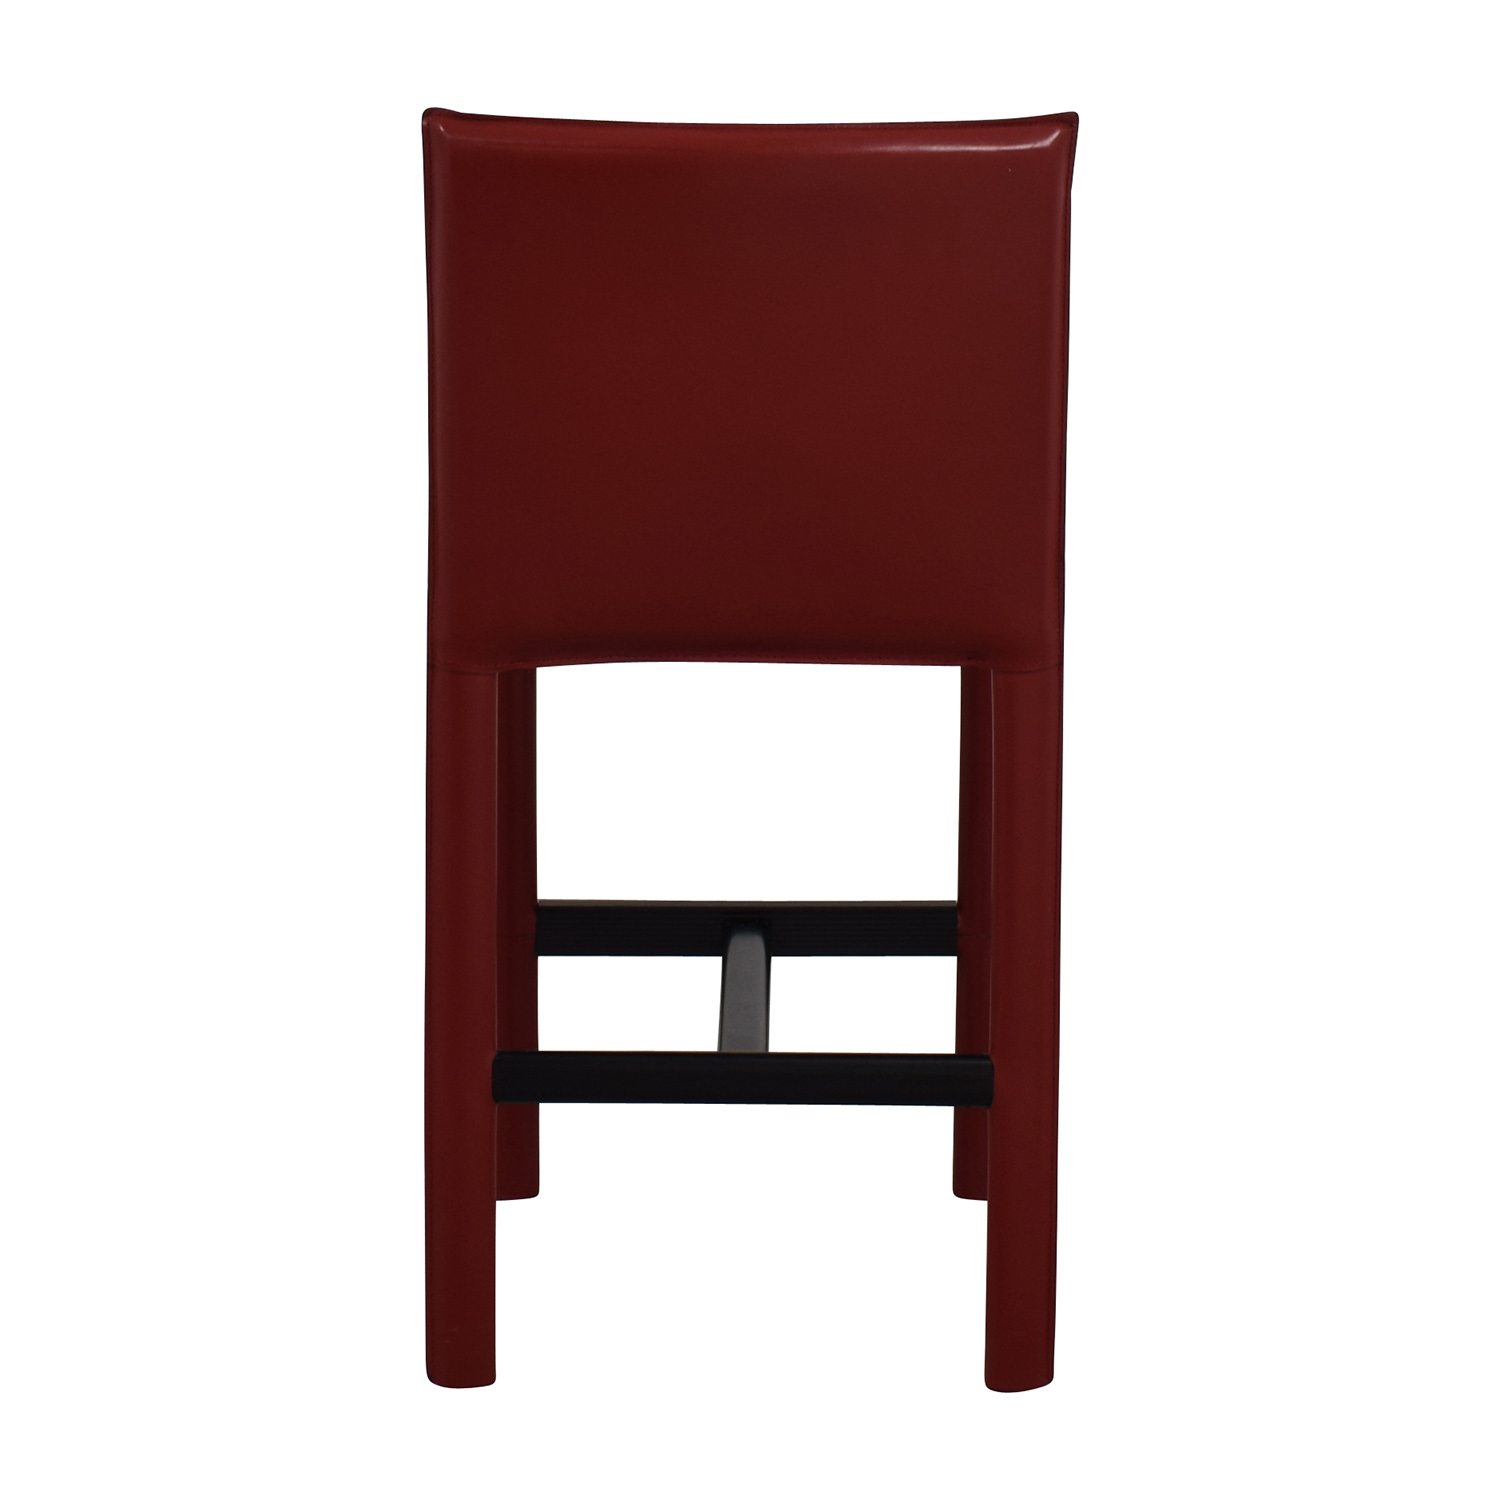 buy Room & Board Room & Board Sava Bar Stool in Red Leather online